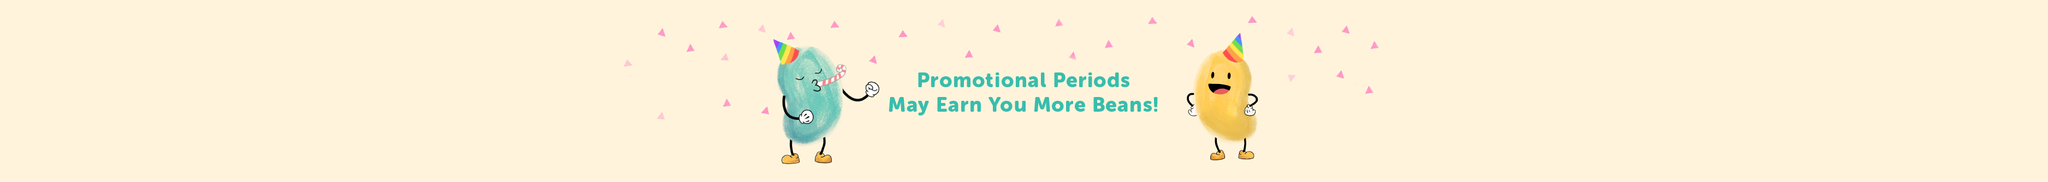 Promotion Periods - May Earn You More Beans!